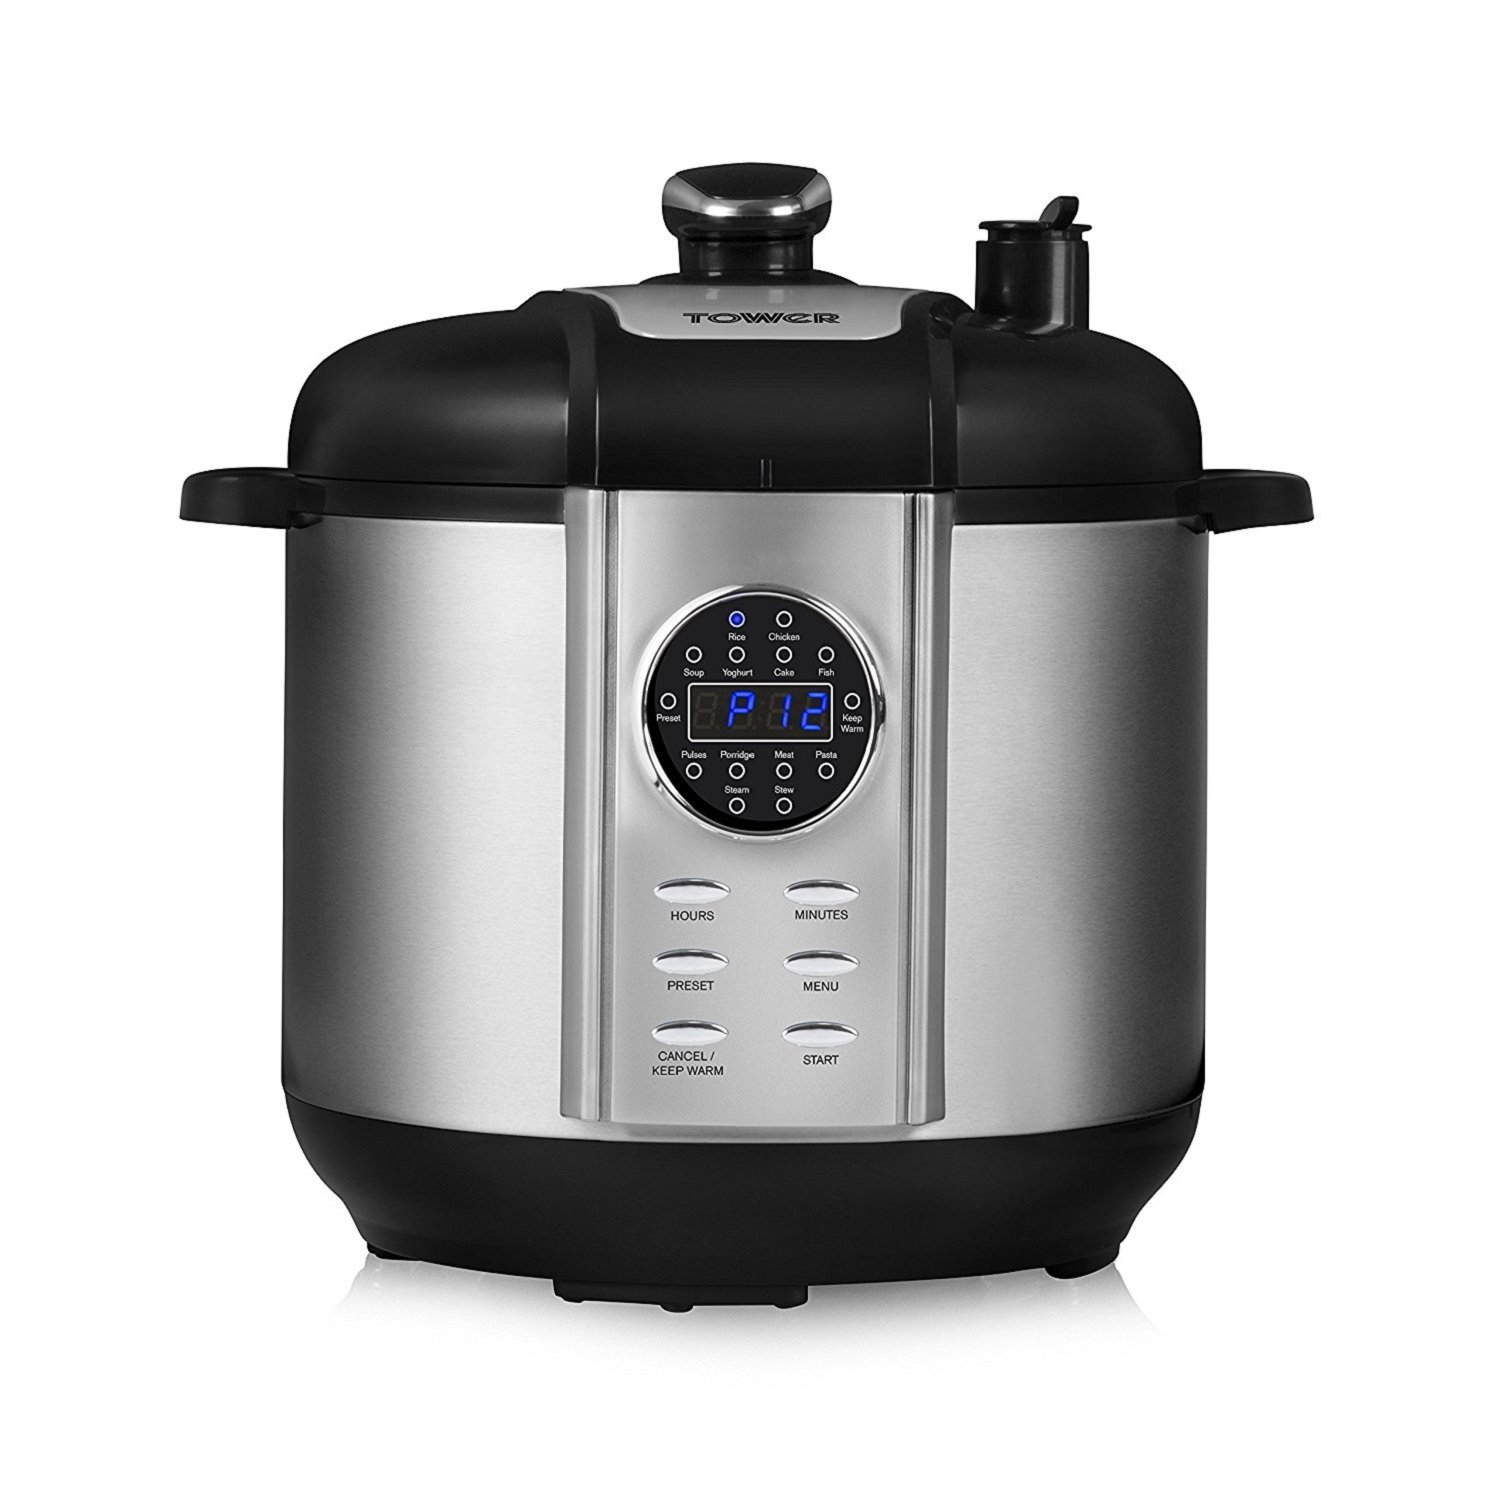 Tefal 8-in-1 Multi-Cooker Programmable 2.2 Litres Rice Cooker Stainless Steel